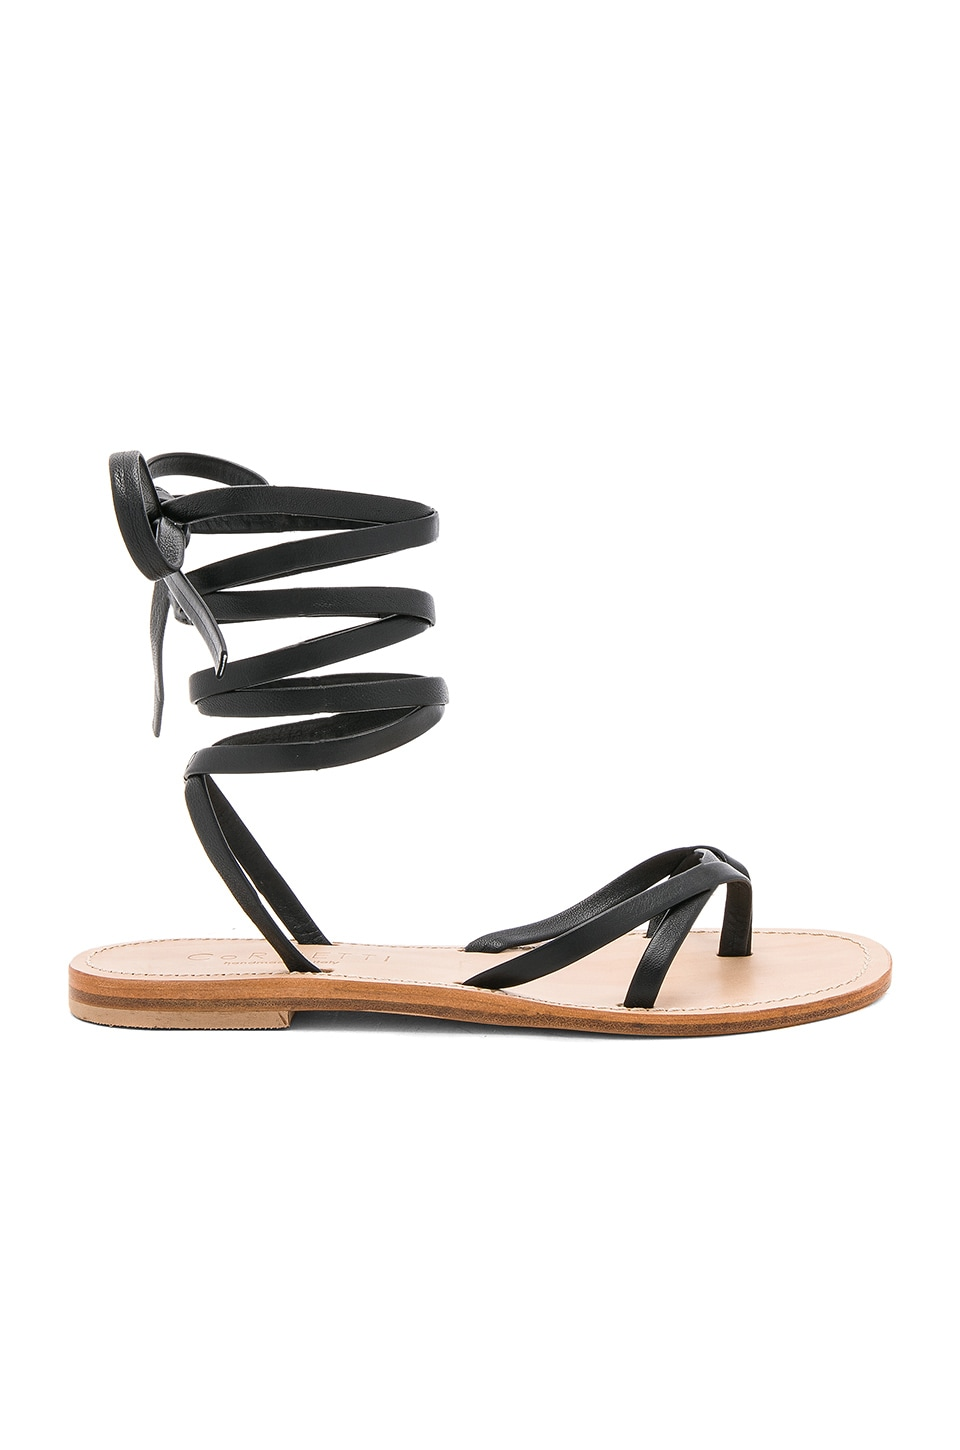 Aiano Sandal